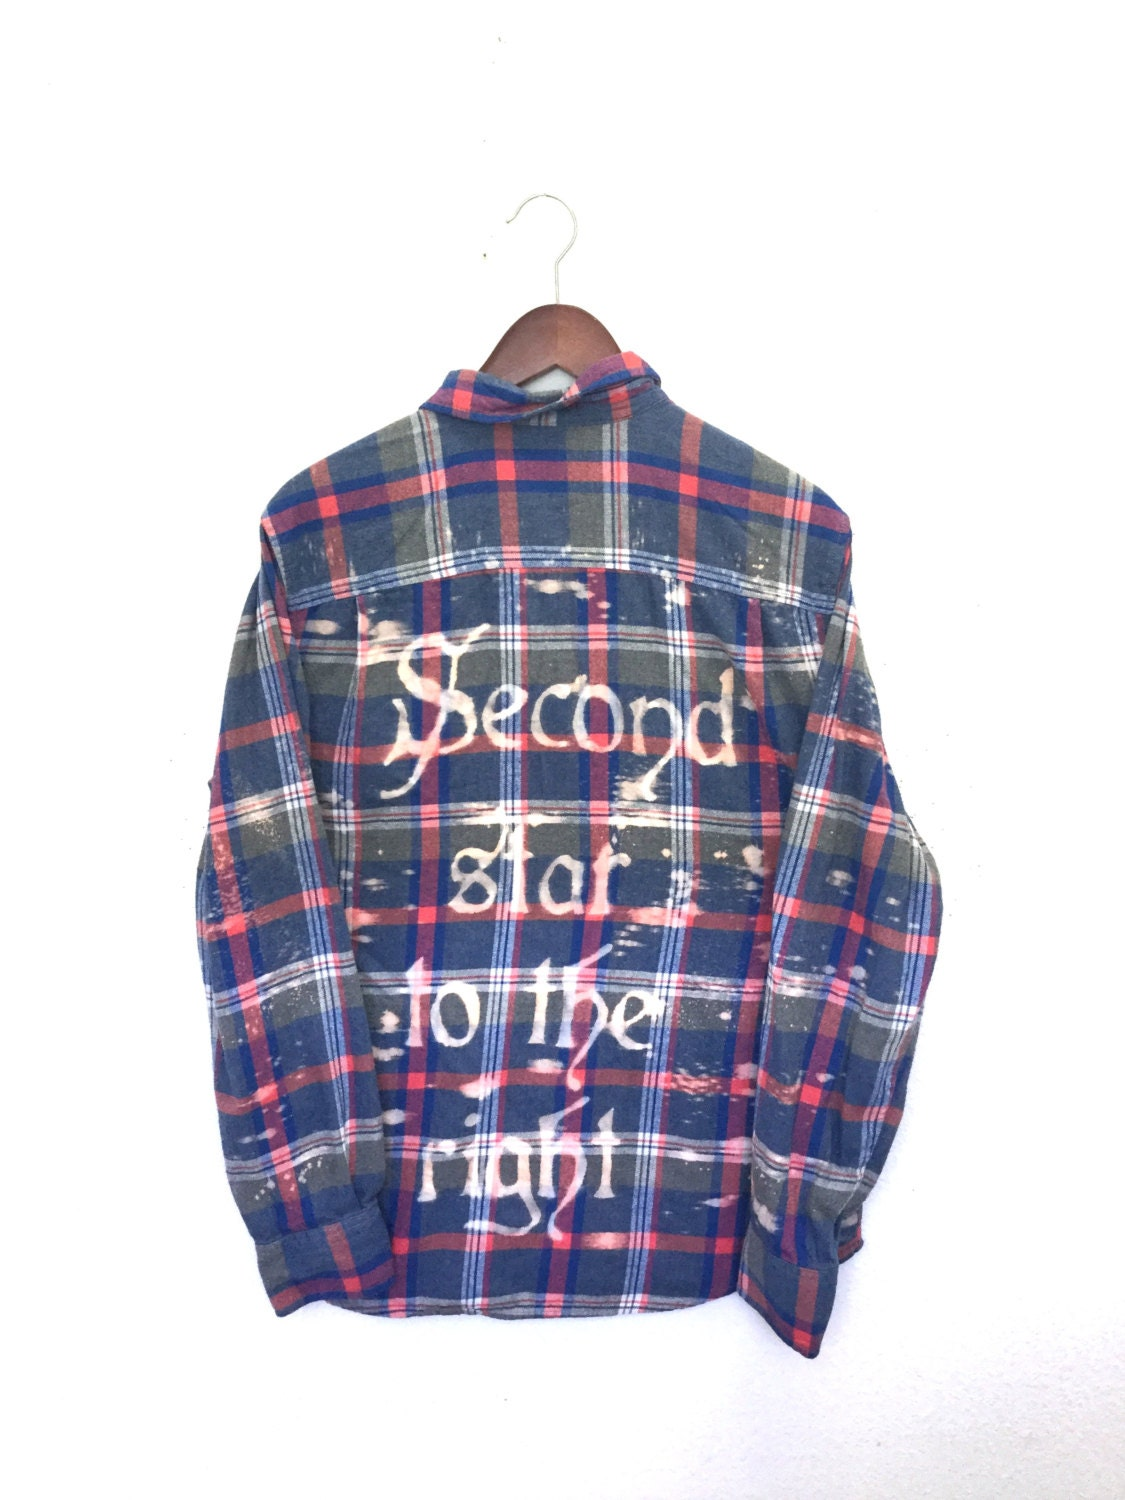 Peter Pan Shirt In Blue Pink Plaid Flannel The Second Star To